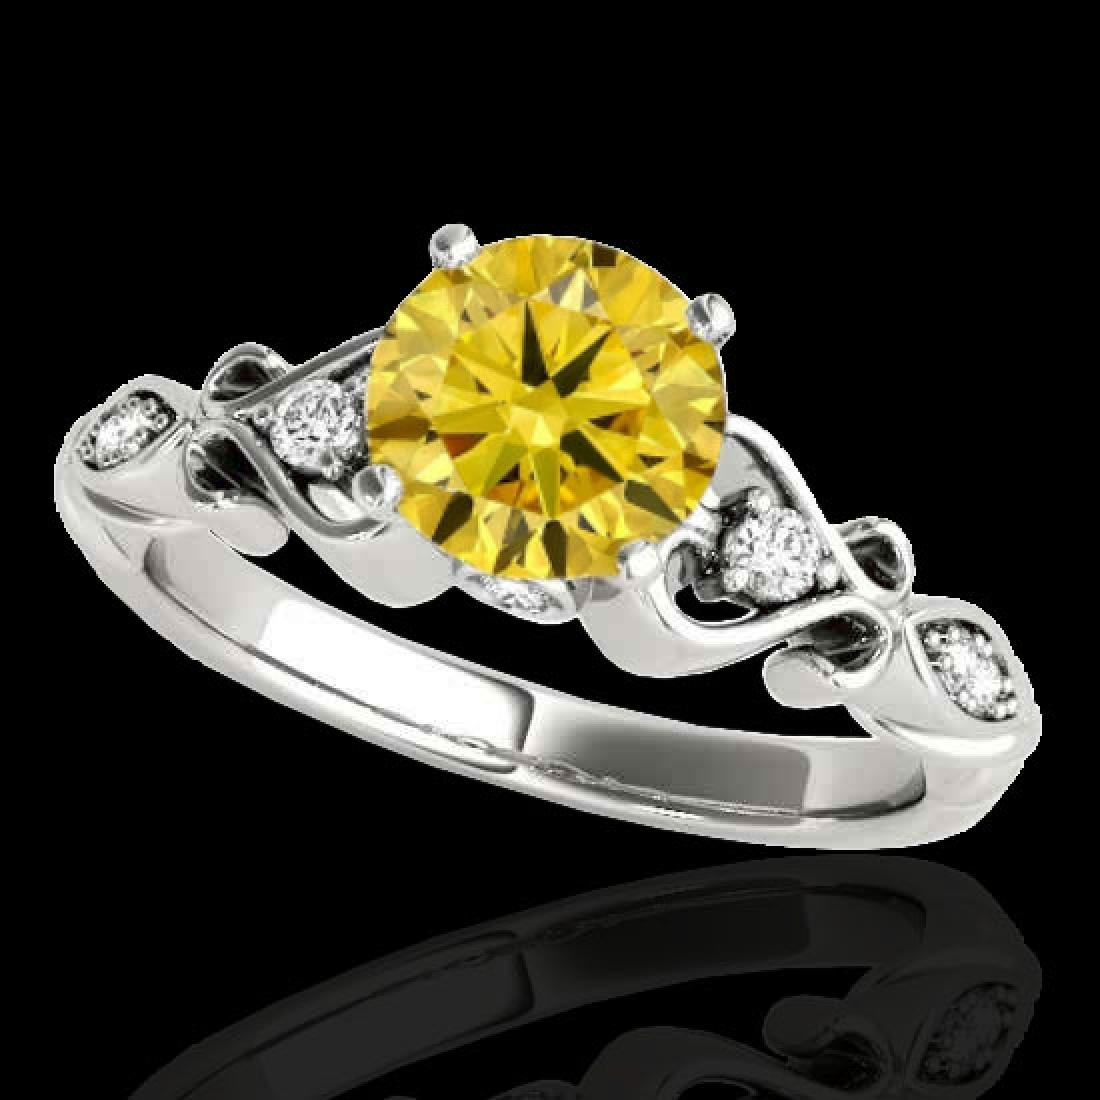 1.15 CTW Certified Si Intense Yellow Diamond Solitaire